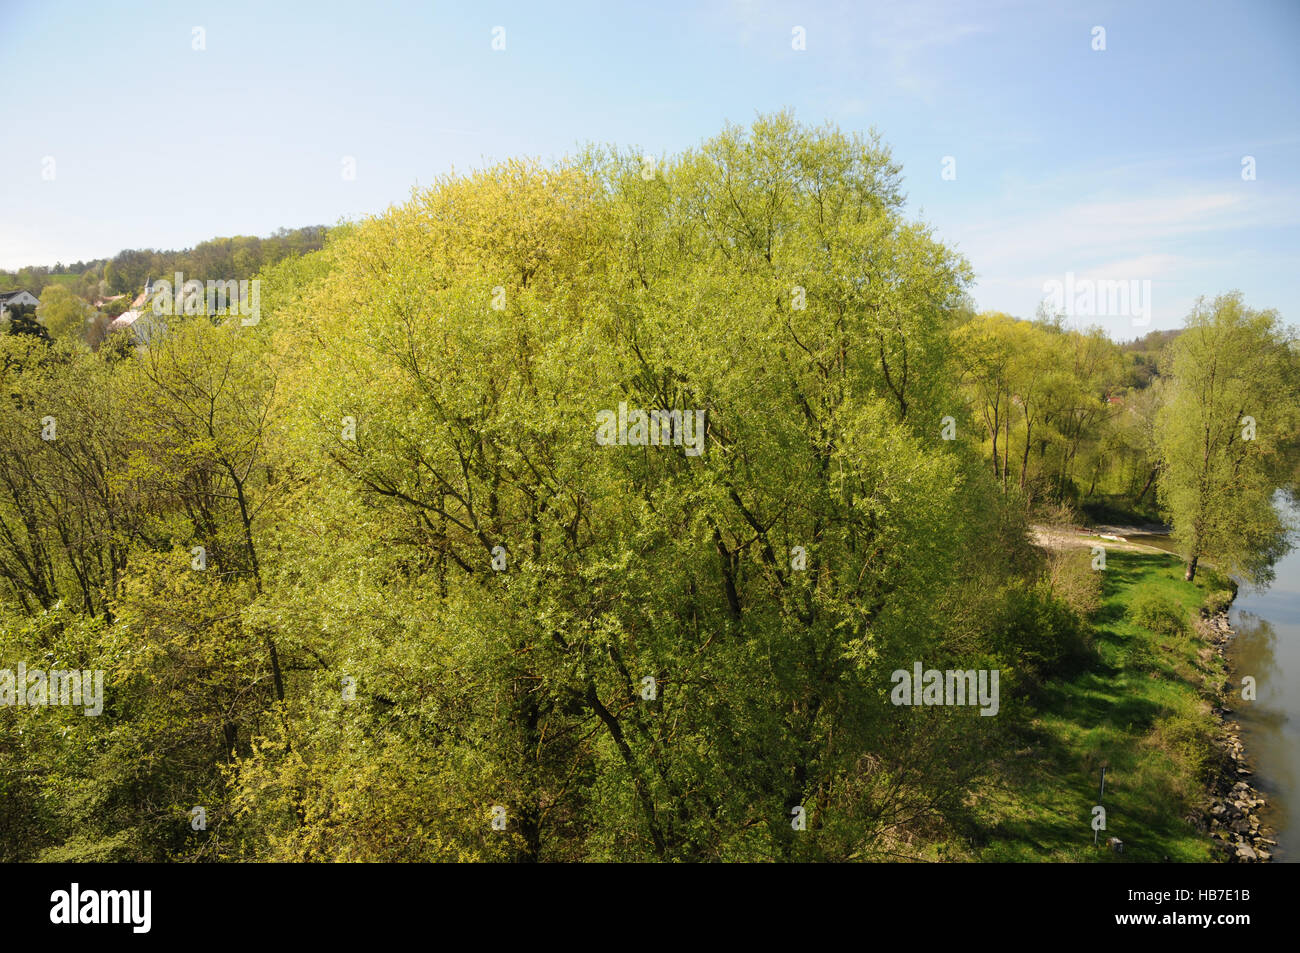 Salix alba, Silver willow, riparian forest - Stock Image